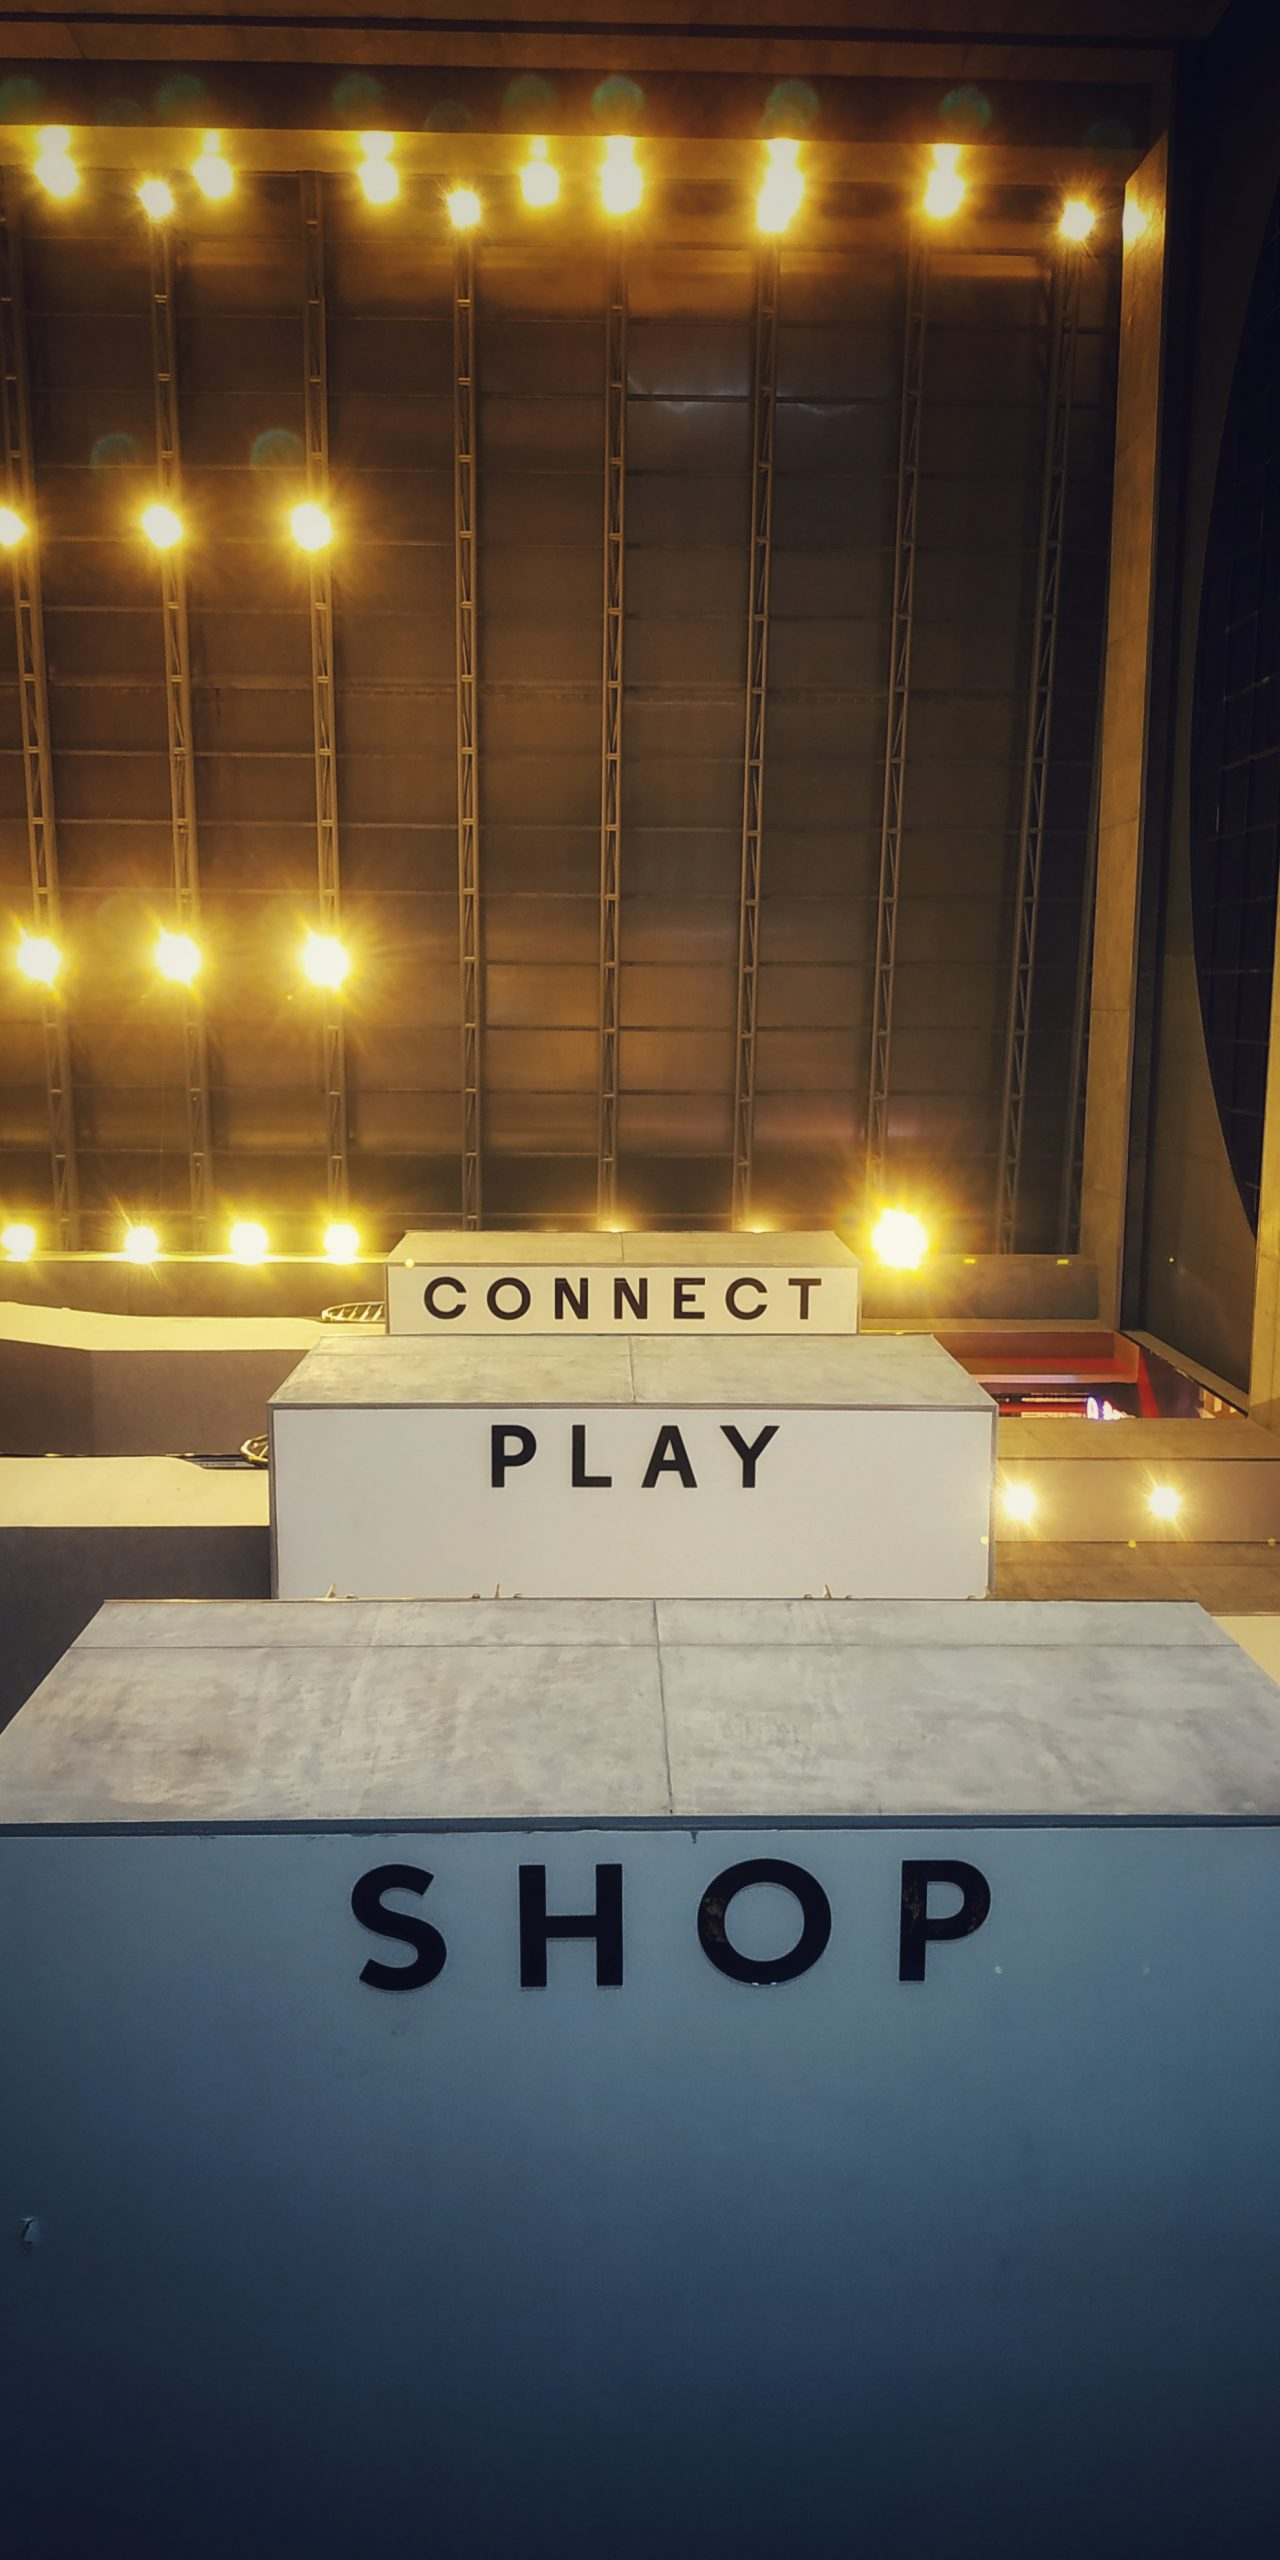 Connect Play Shop